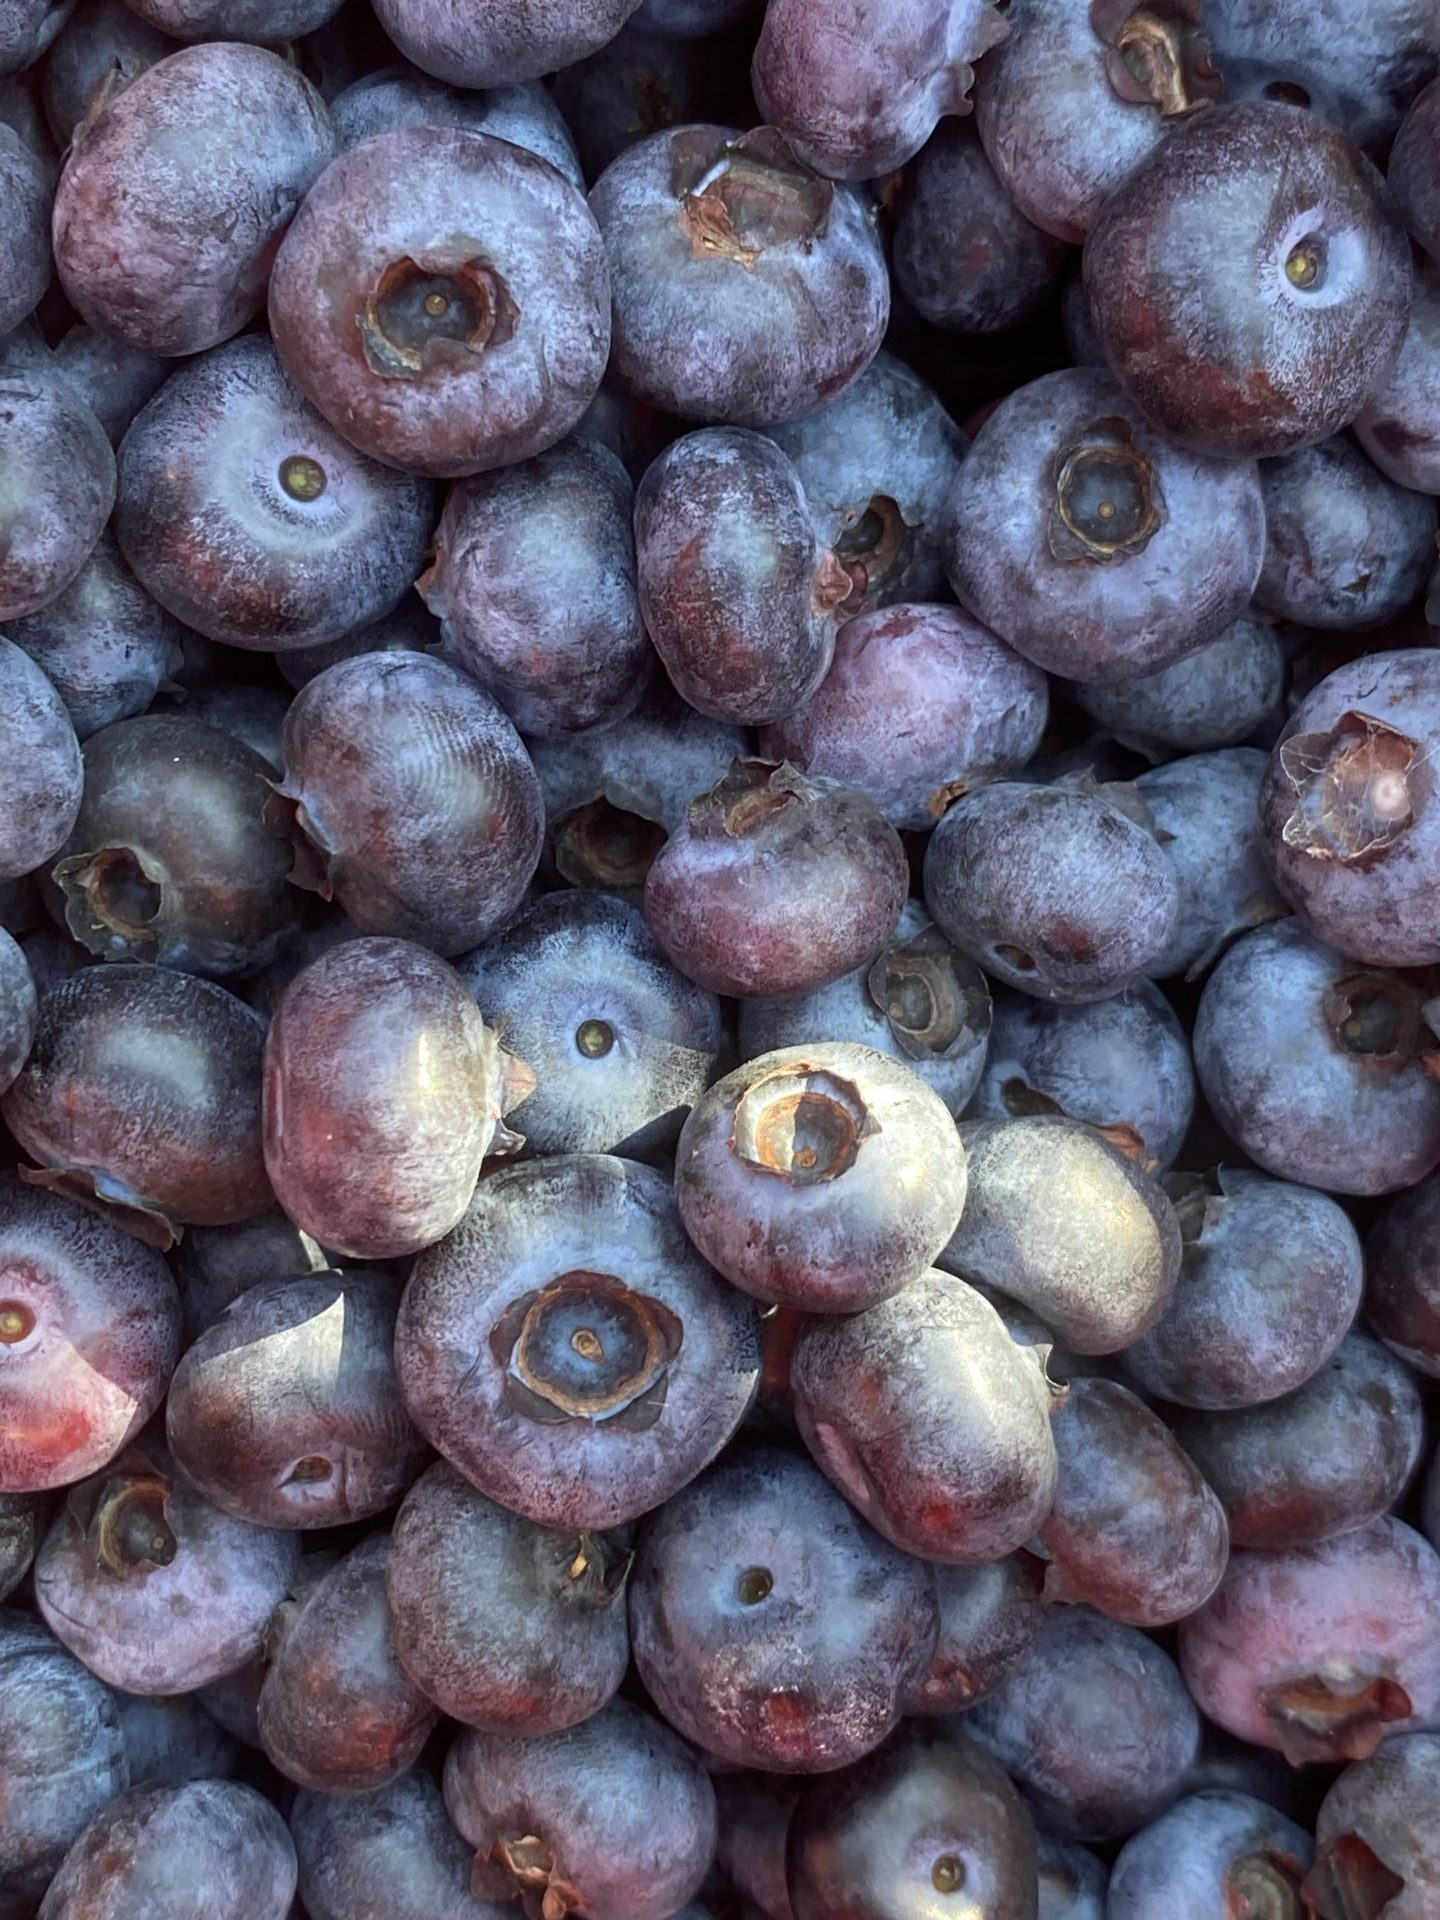 Curious where to go blueberry picking in Los Angeles? Los Angeles blogger My Teacher Got Style is sharing where, why and how to go blueberry picking this season!